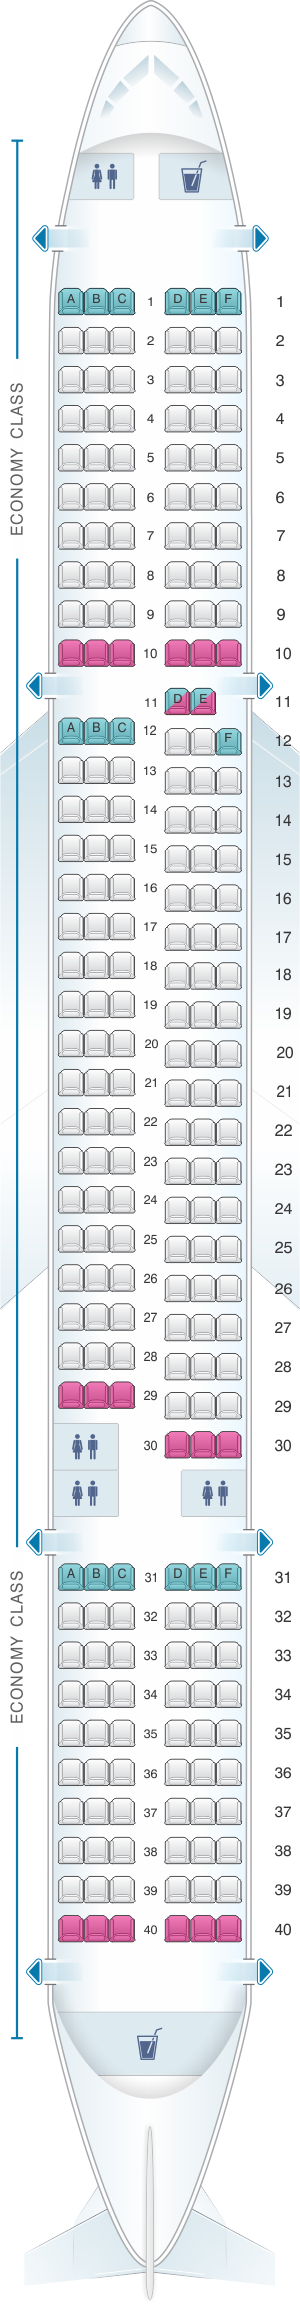 Seat map for TUI Boeing B757-200